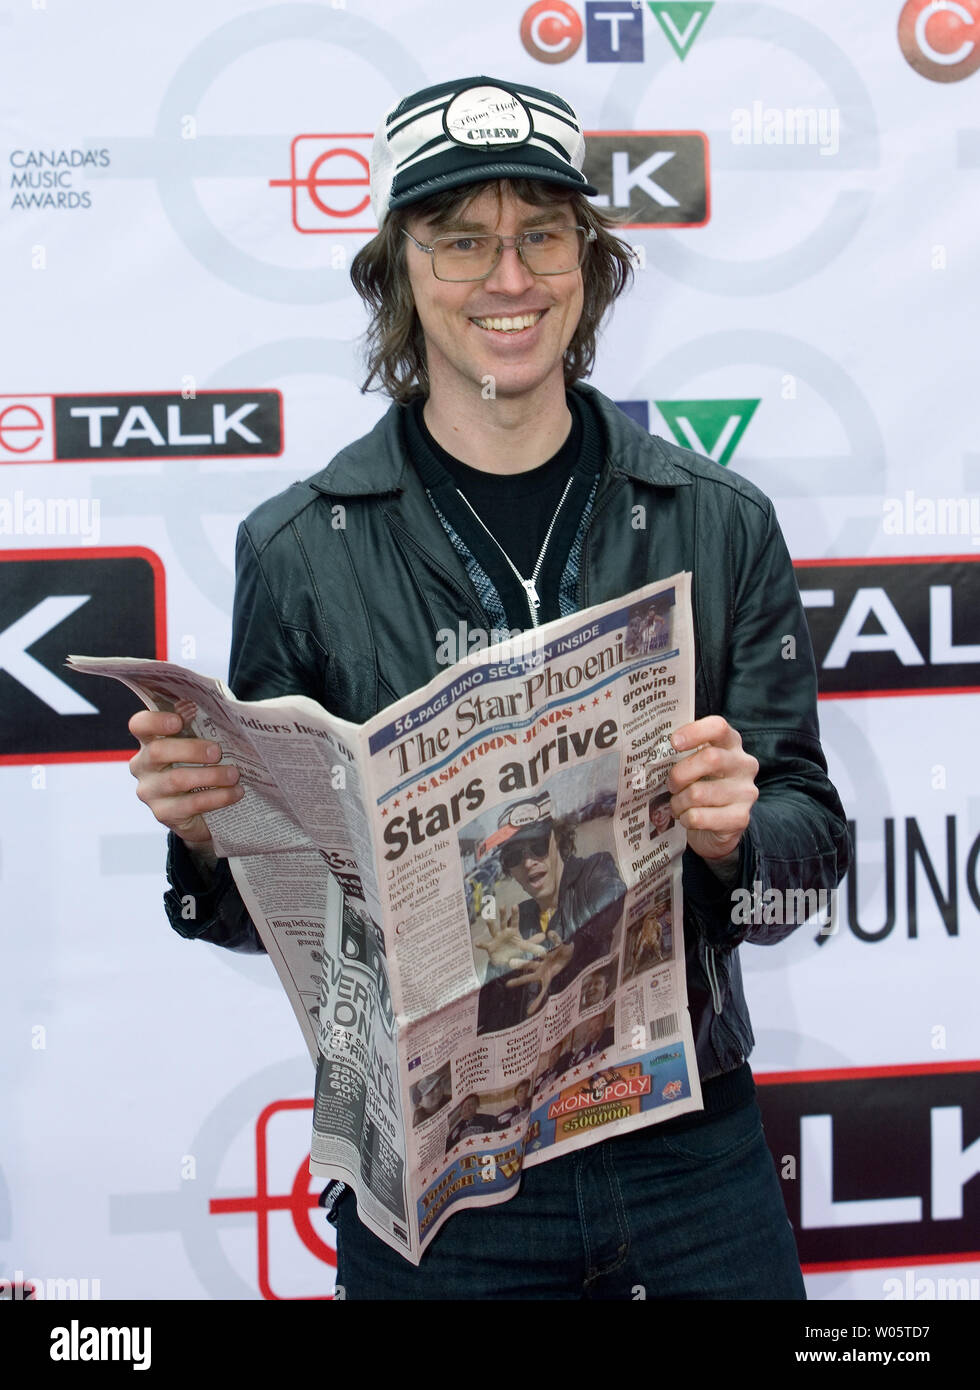 Chris Murphy Of The Band Sloan Arrives On The Red Carpet For The 2007 Juno Awards At The Credit Union Centre In Saskatoon Saskatchewan April 1 2007 Upi Photo Heinz Ruckemann Stock Photo Alamy